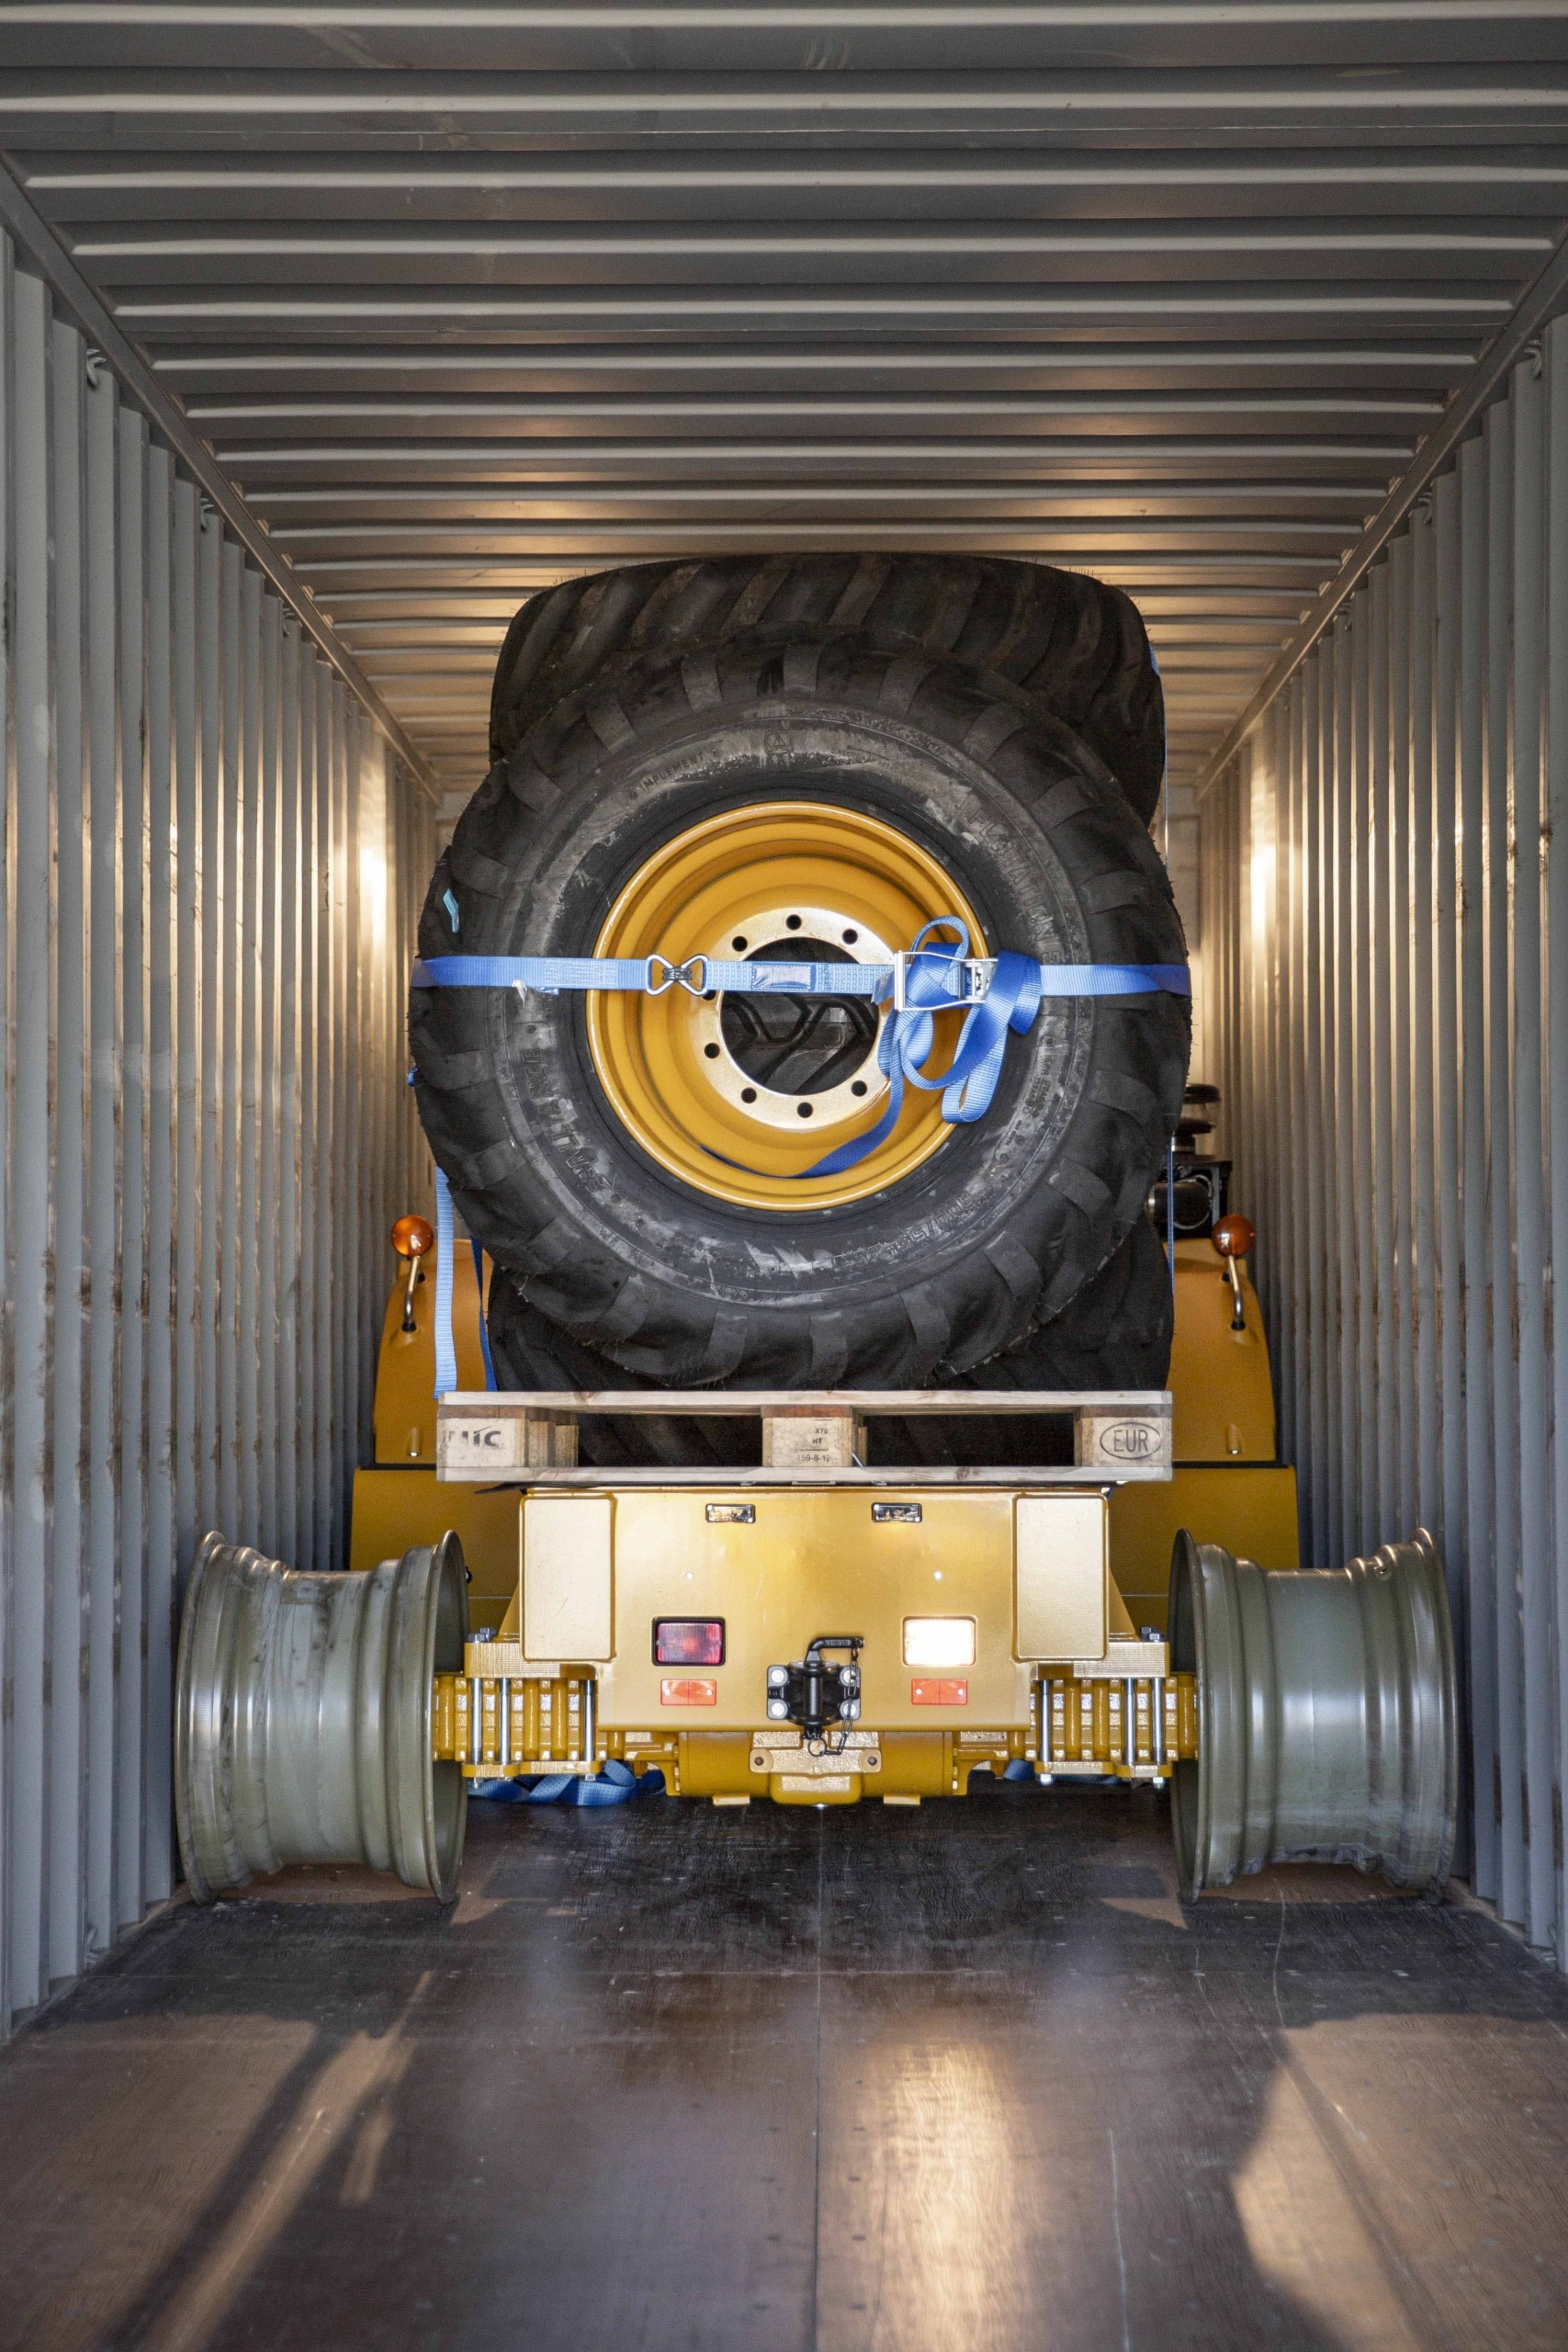 hydra inside a container on temporary rims